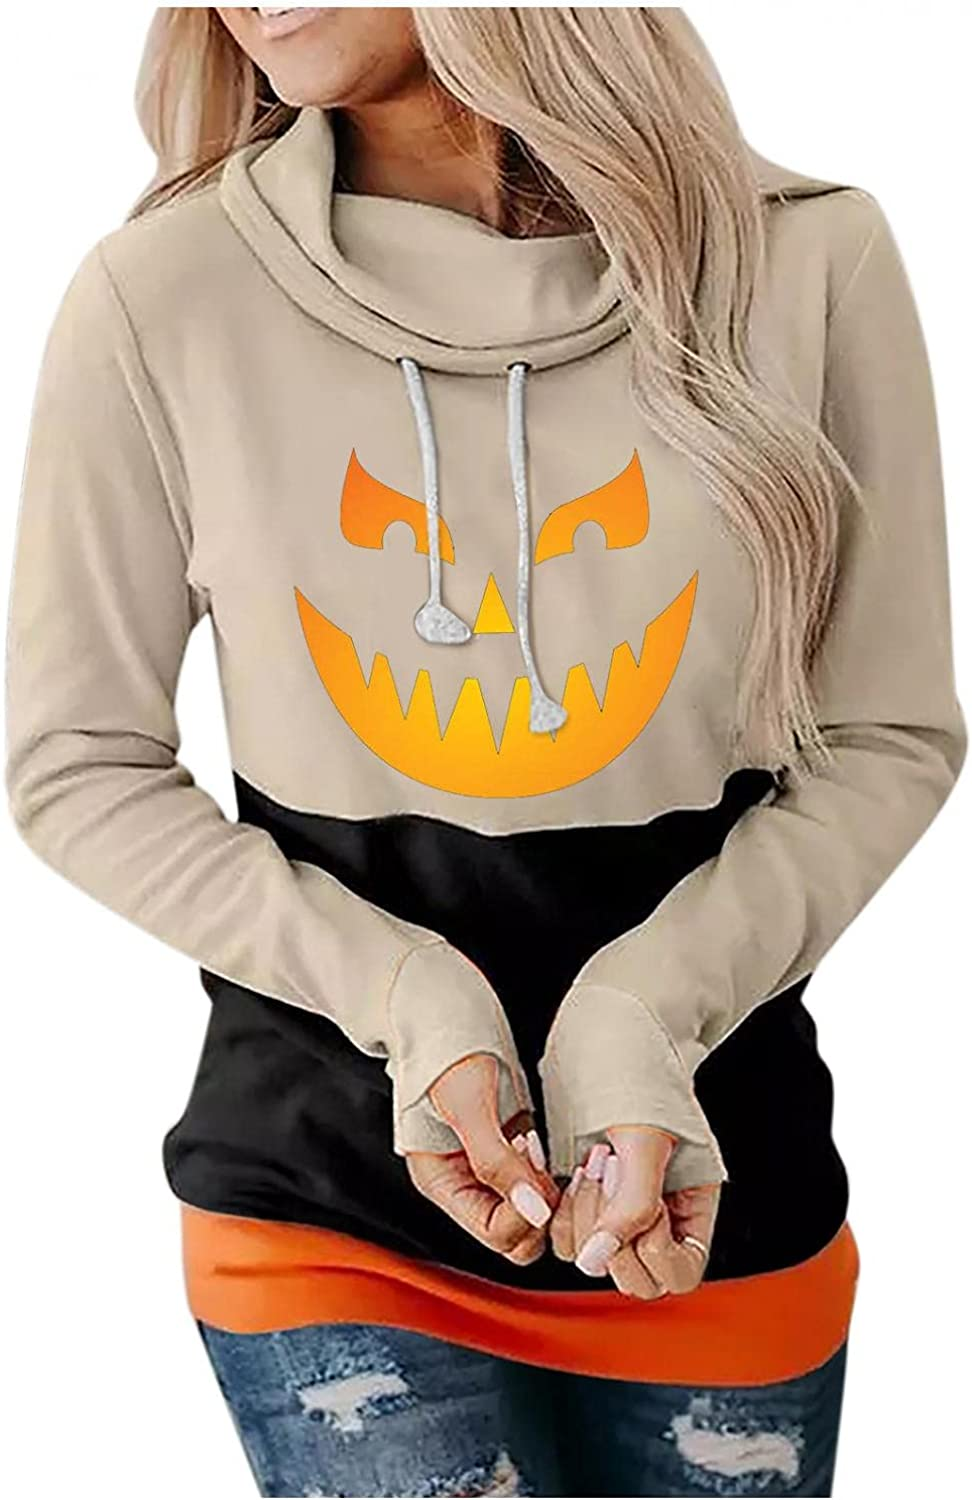 COMVALUE Halloween Clothes for Women, Women's Halloween Print Long-Sleeved Hooded Sweatshirt Casual Blouse Pullover